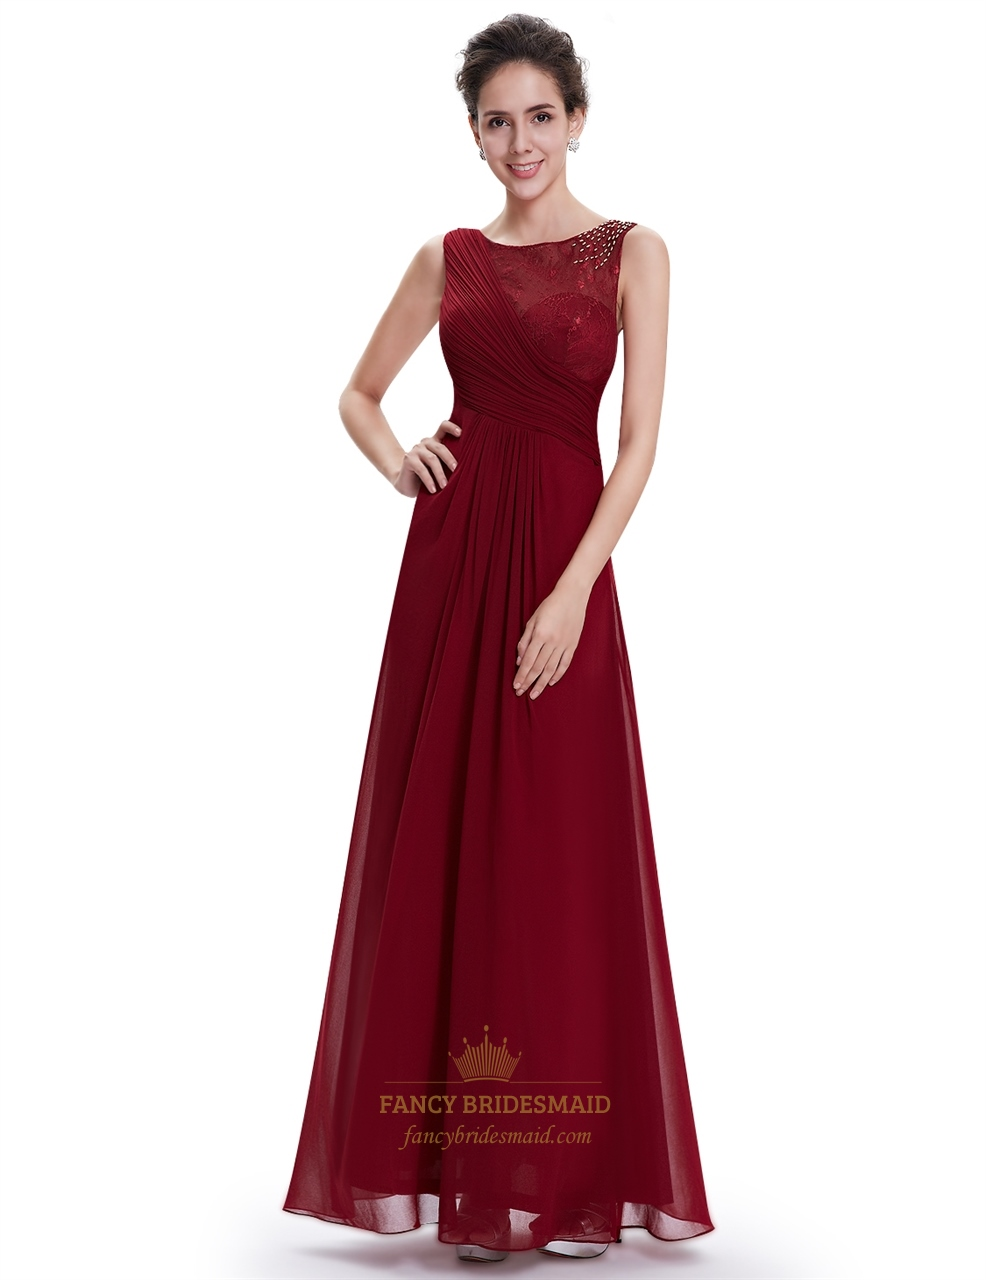 Burgundy lace top chiffon long bridesmaid dresses with beaded burgundy lace top chiffon long bridesmaid dresses with beaded detail ombrellifo Choice Image